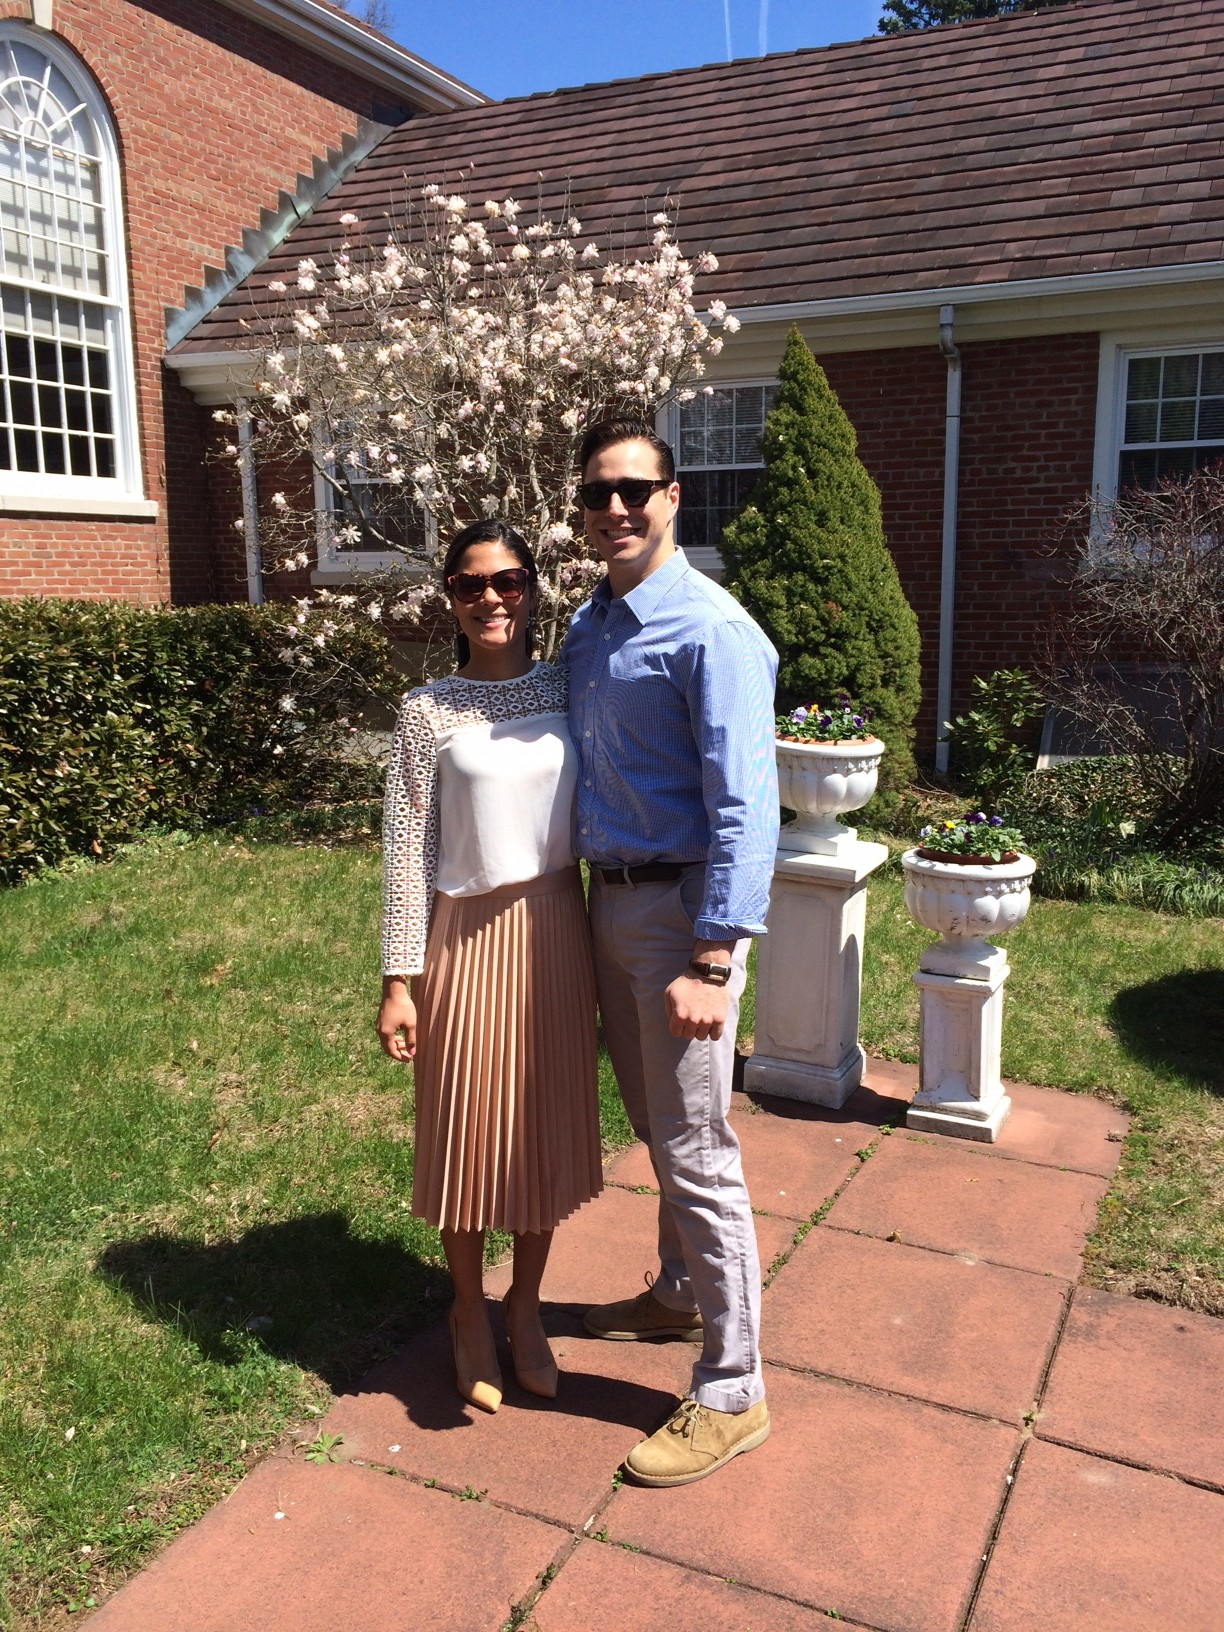 Easter in New Jersey